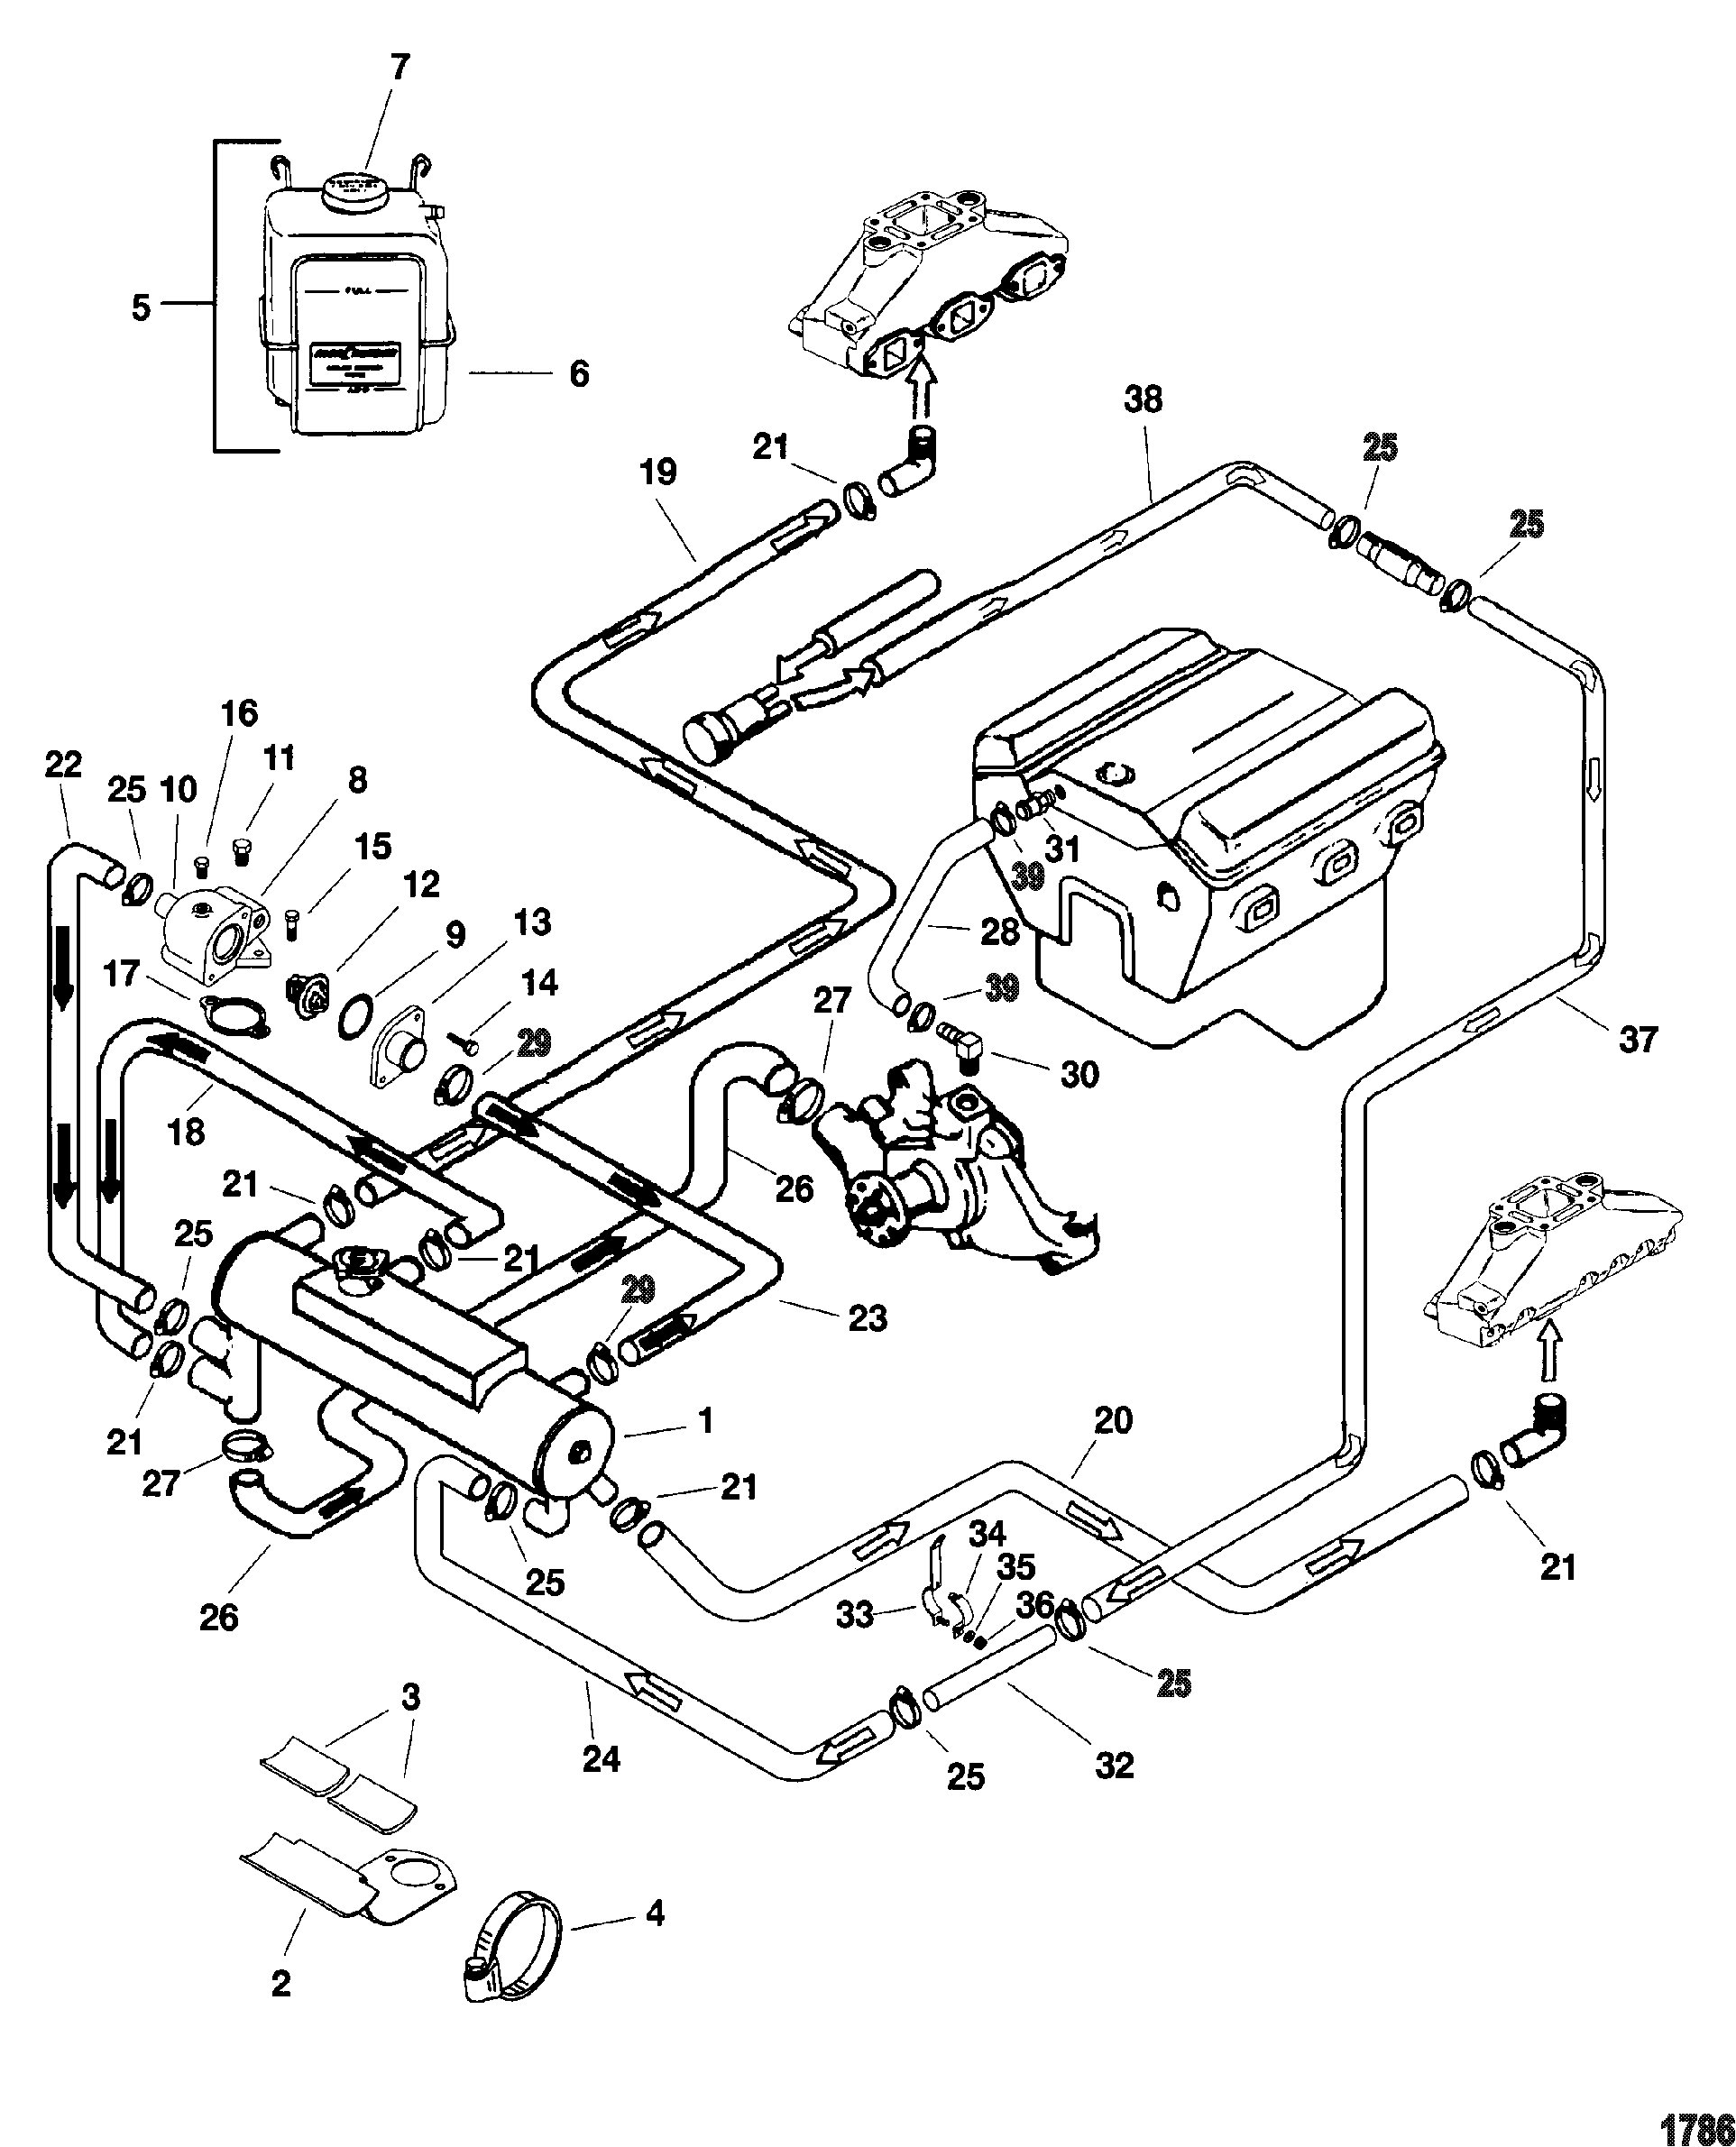 Cht Sensor Ford Focus in addition 6lan3 Ford Crown Victoria Lx 2001 Crown Vic 4 6 Ect likewise Ford Cylinder Head Temperature Sensor additionally 2013 Ford Fusion Engine Diagram likewise T3347357 Coolant temperature sensor located. on 2006 f150 cylinder head temperature sensor